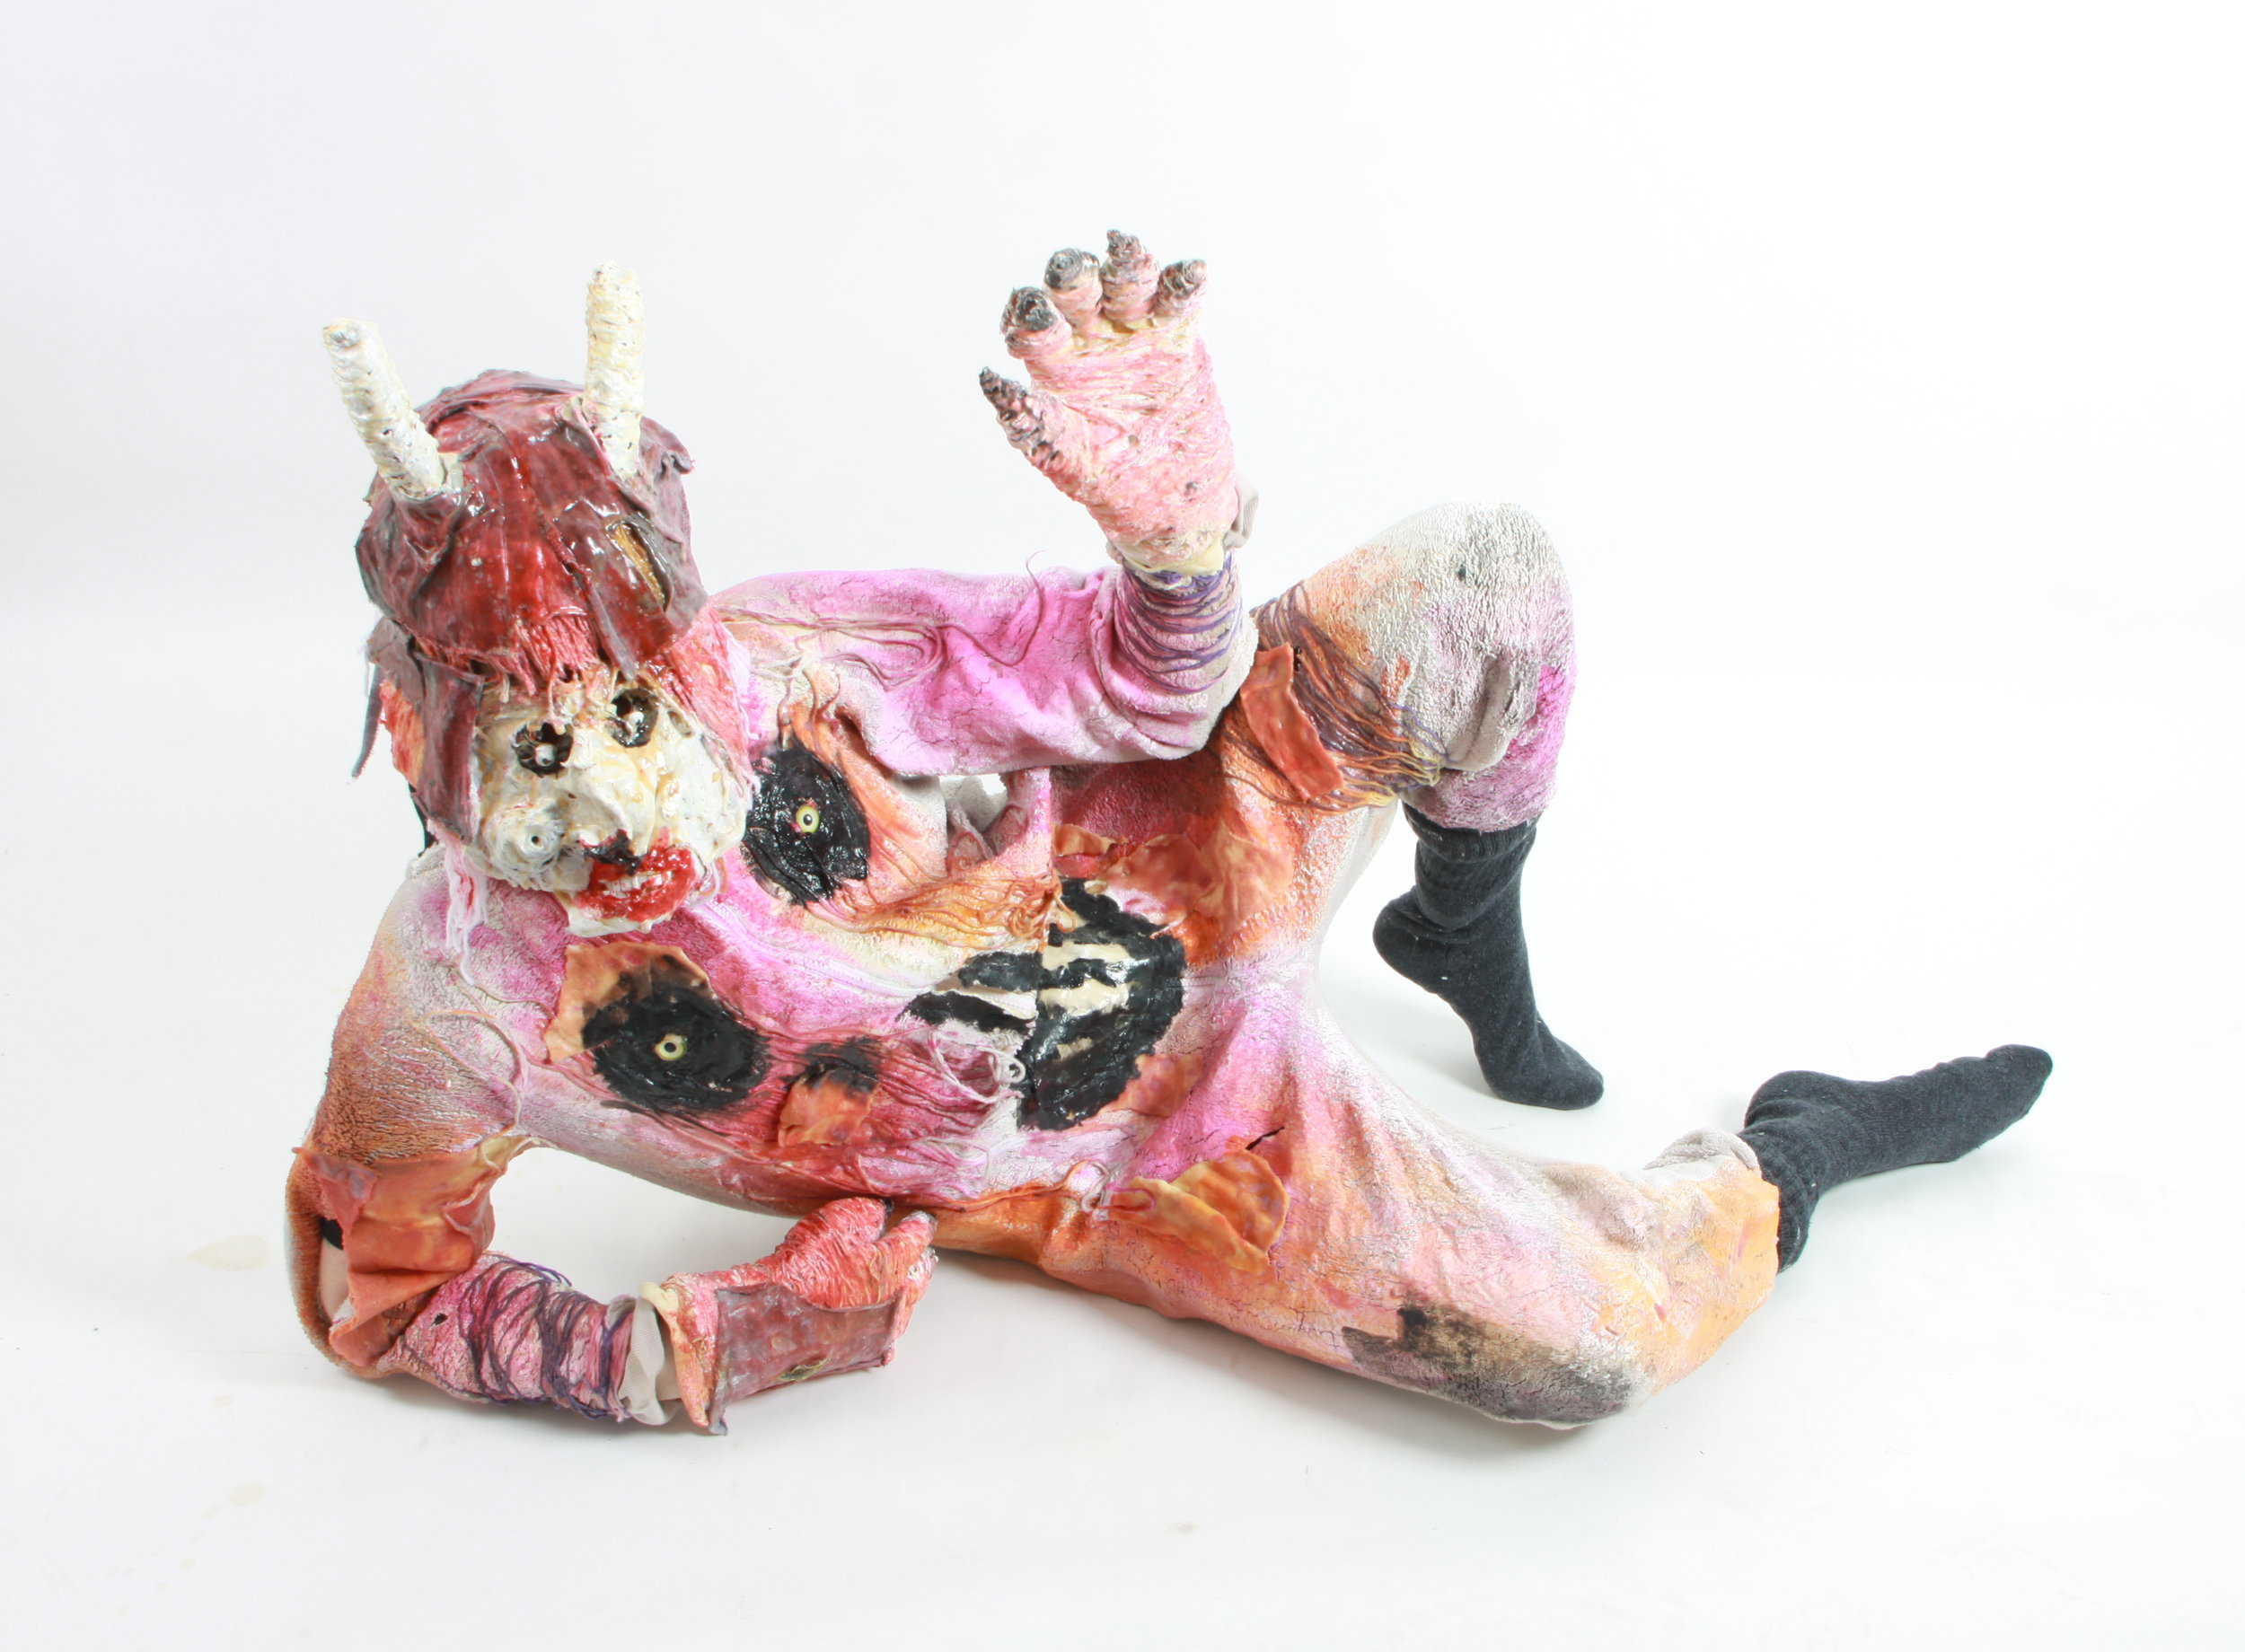 Devil Monster, 2018. Photgraph by Amy Ellison of costume used in 'Hobgoblin Limbo' by John Powell-Jones.JPG